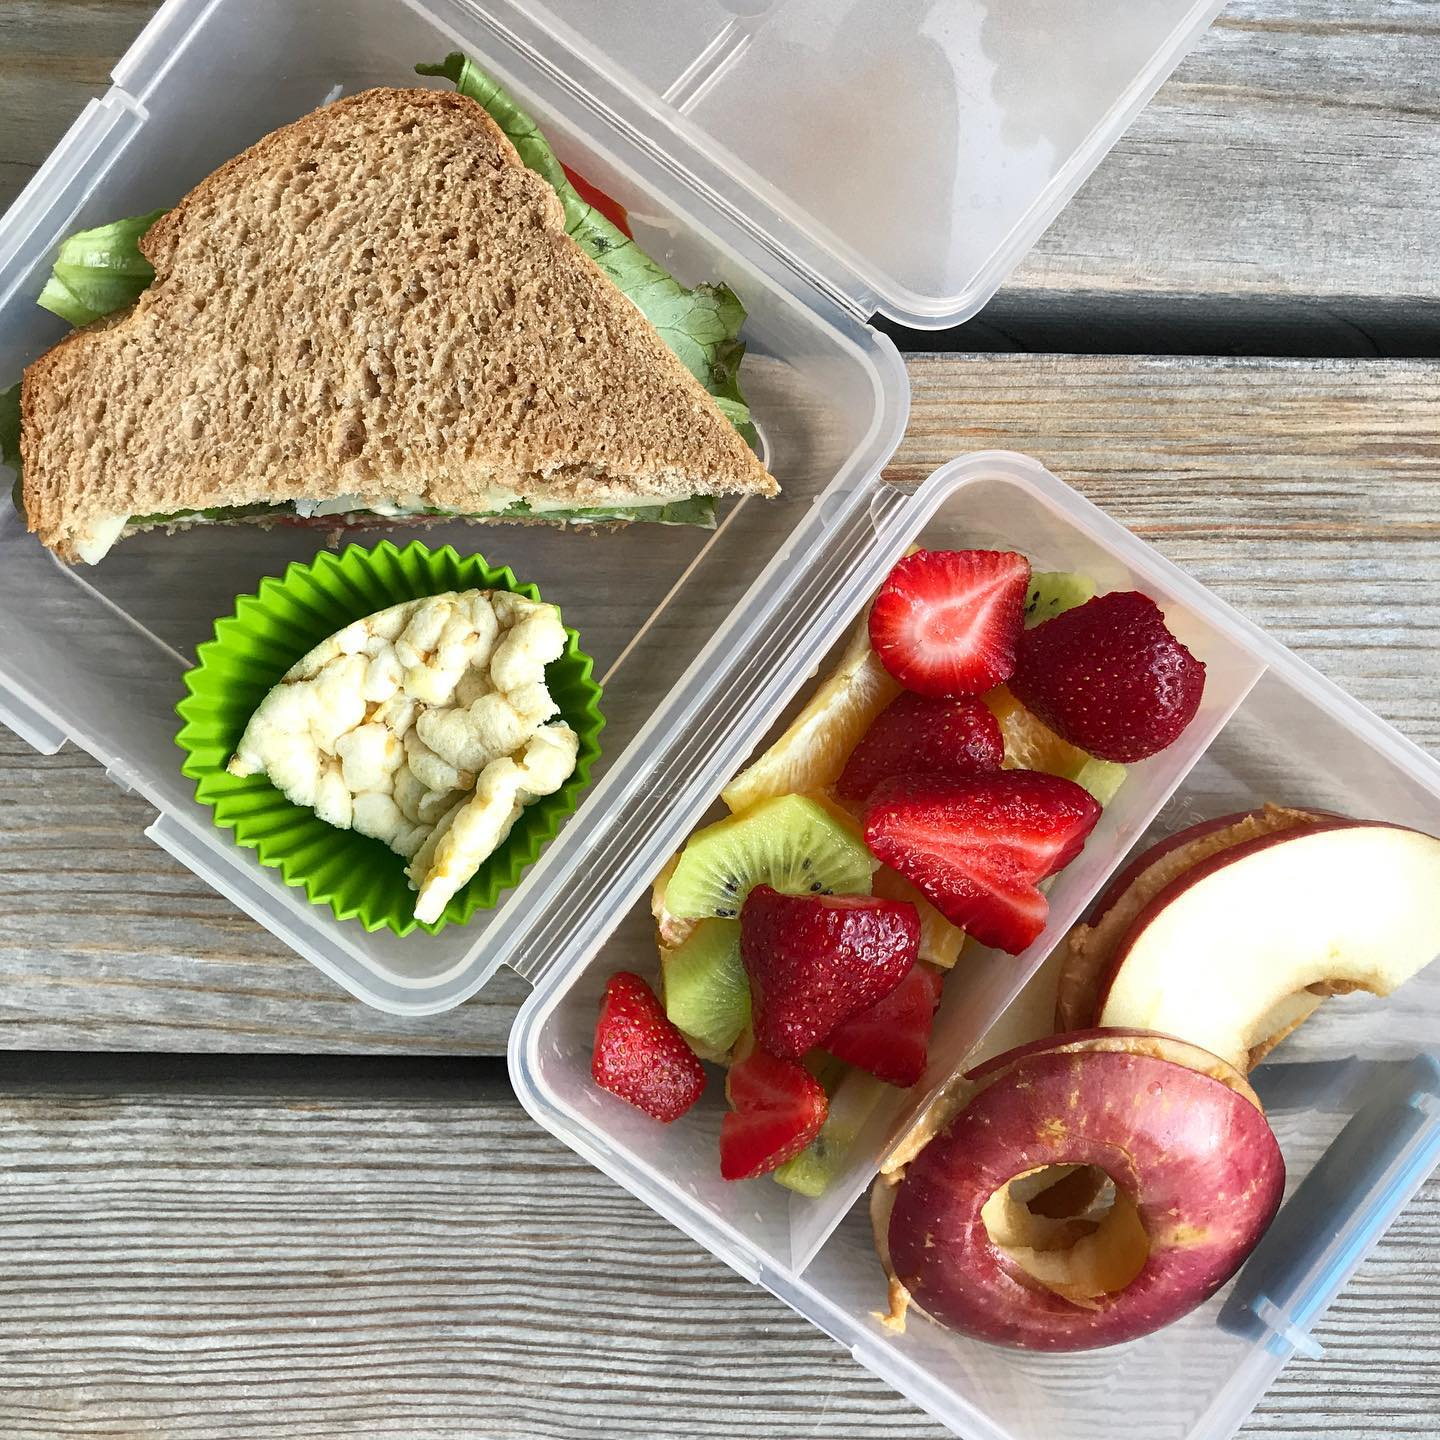 school lunch hummus/cheese/lettuce/tomato sandwich, popcorn cake, fruit mix (oranges, kiwi, strawberries), and some apple/PB sandwiches.